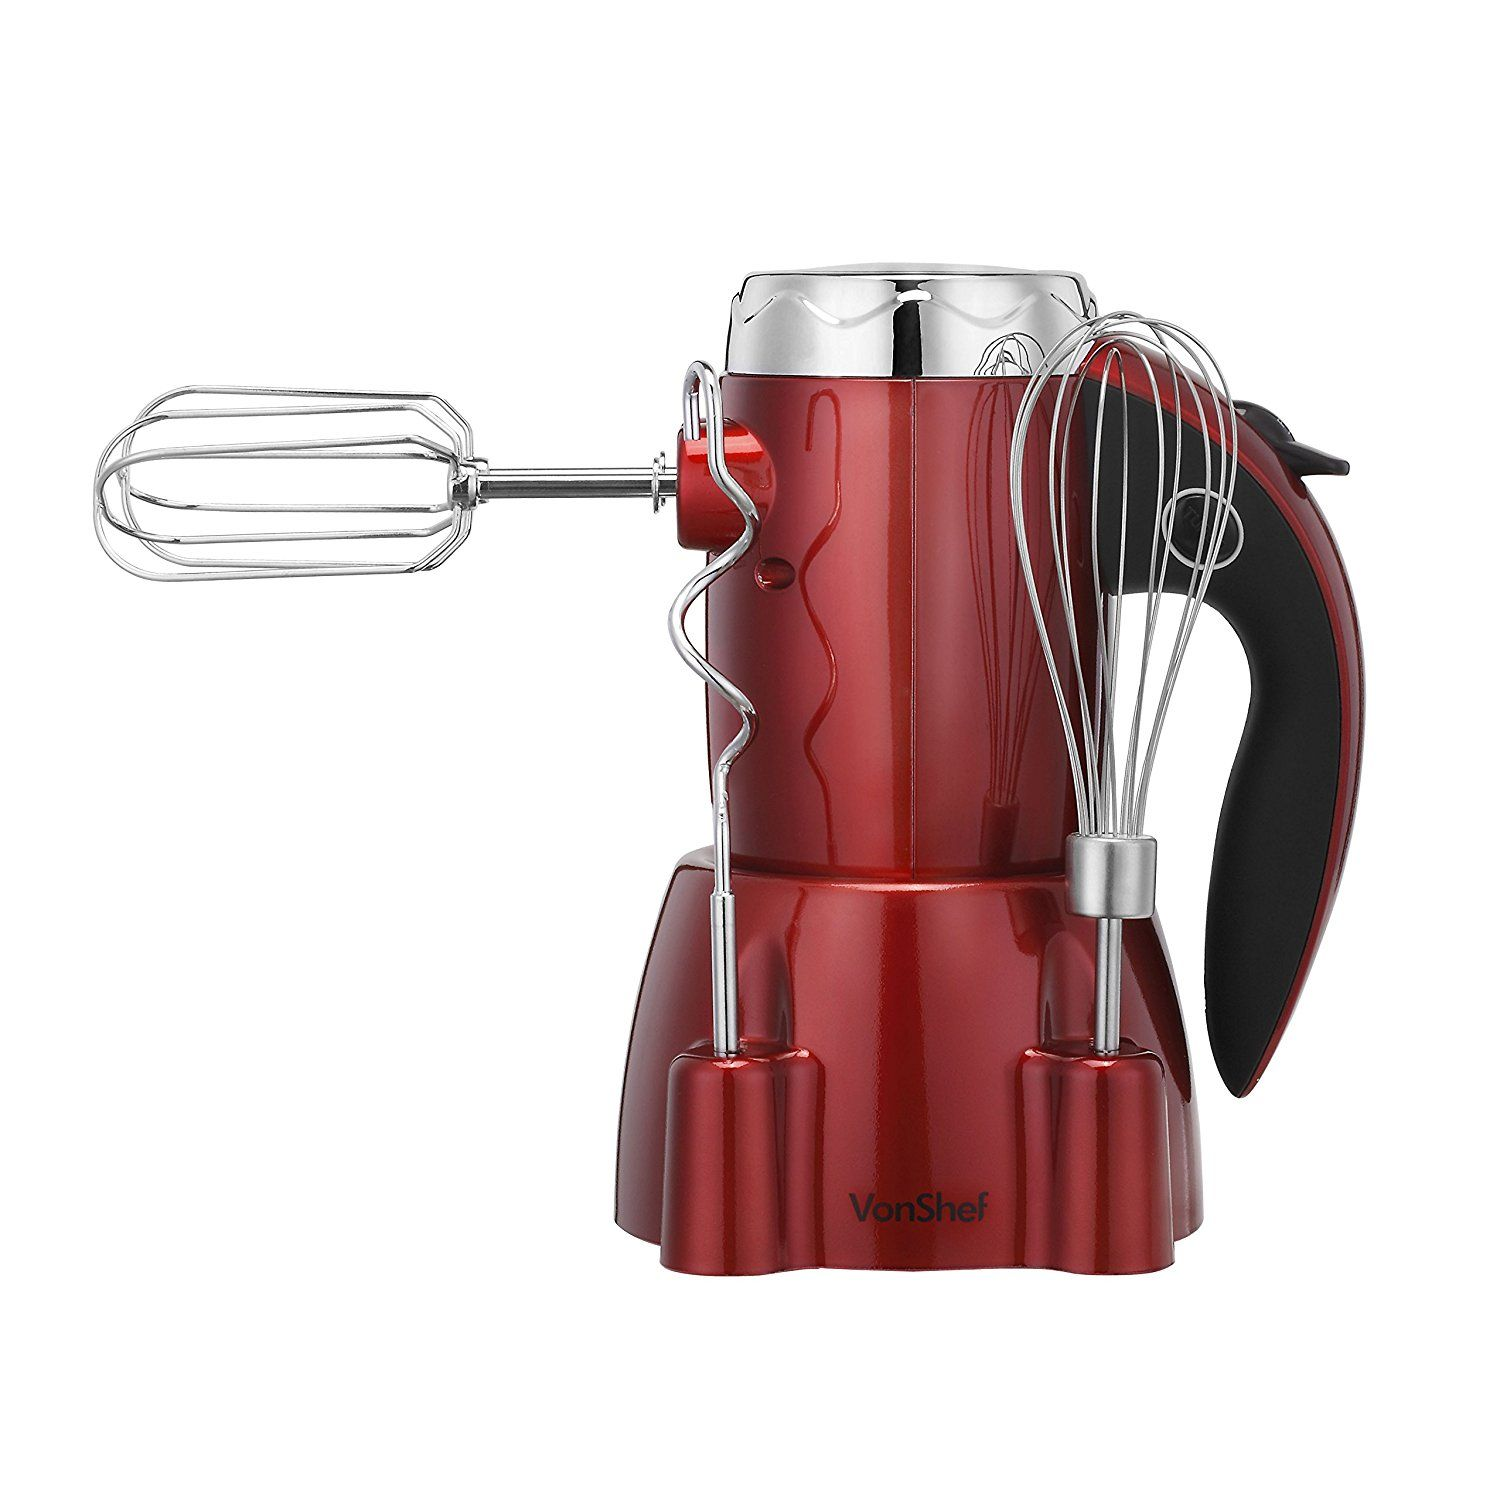 Vonshef 250w 6 Speed Hand Mixer Whisk With Stand Includes 2 Dough Hooks 2 Beaters Plus Turbo Function Red This Is An Amazon Hand Mixer Hand Blender Blender